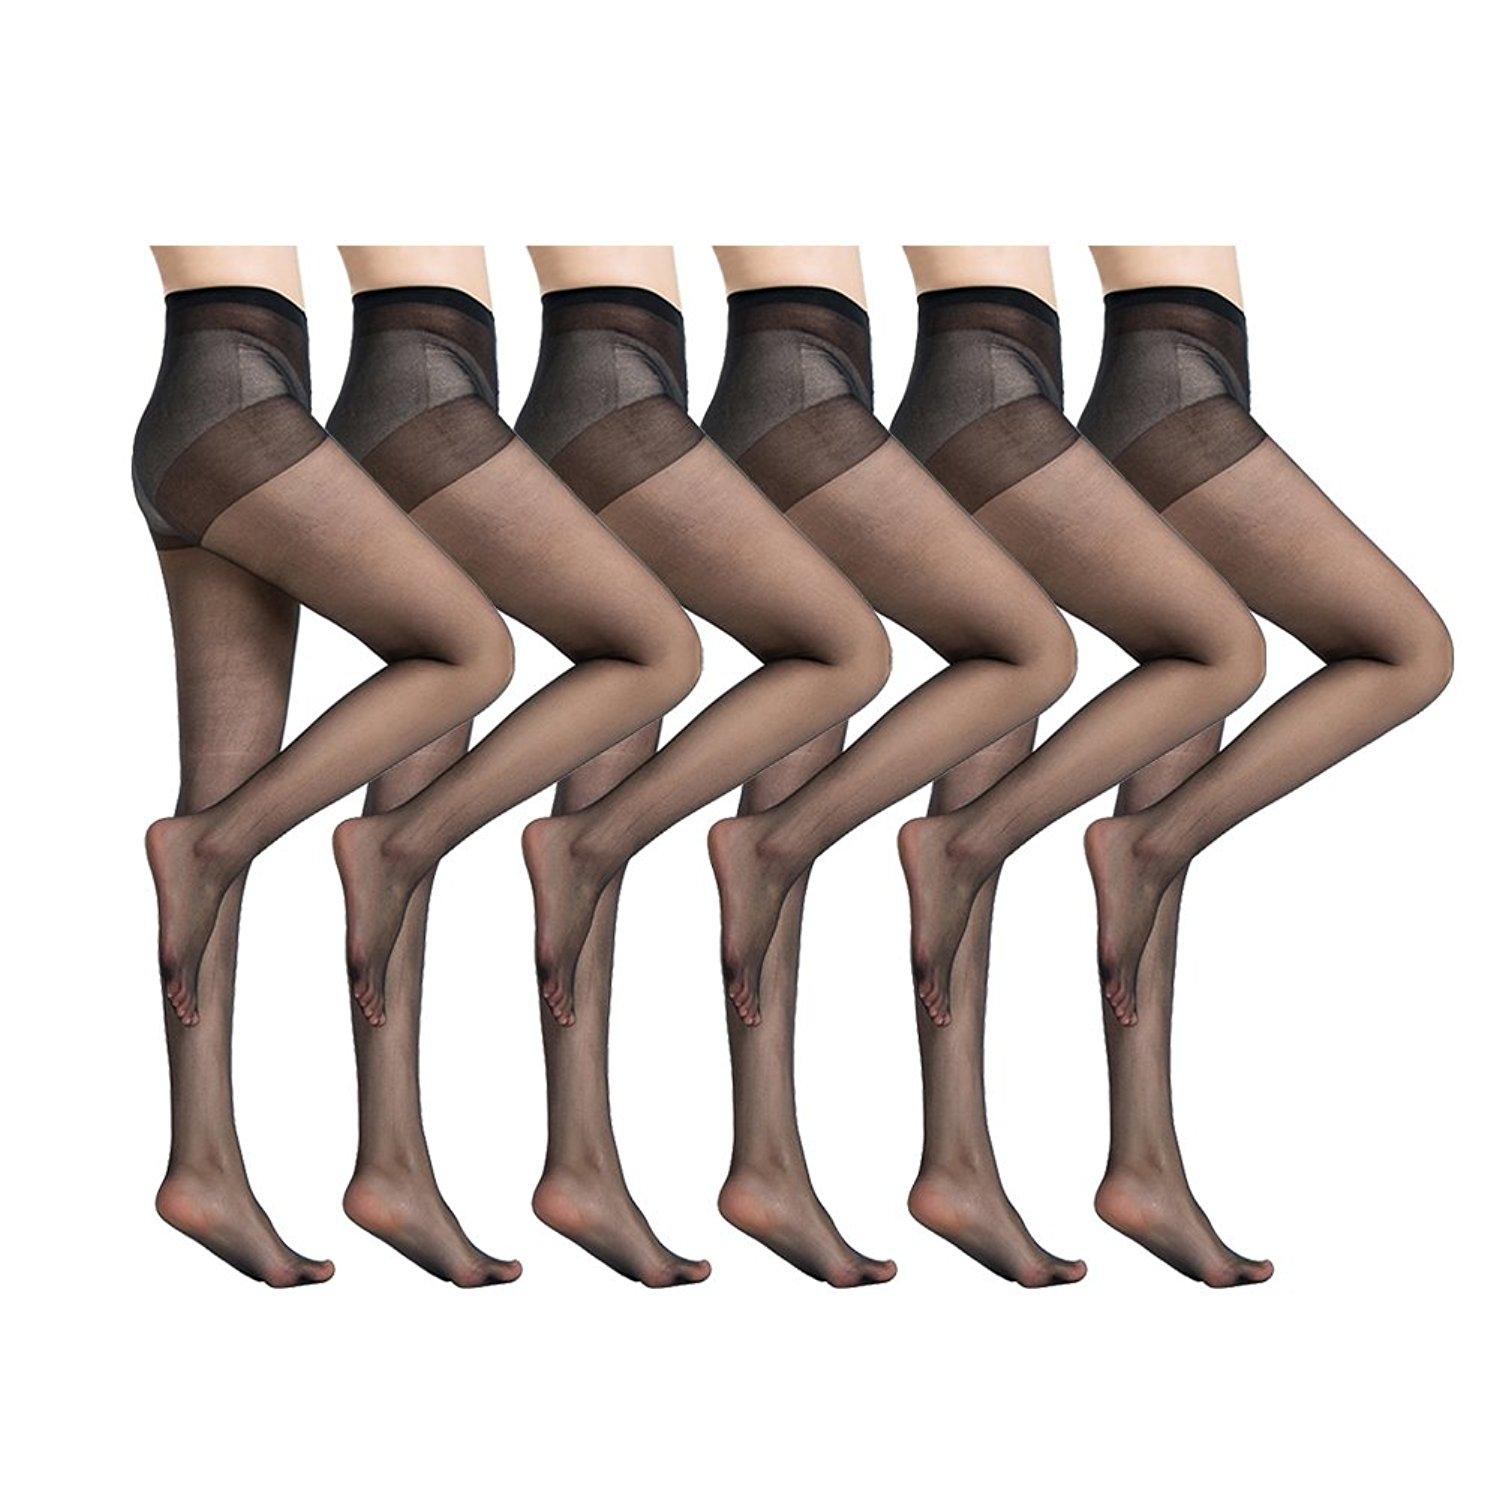 7a2e9a9b0 Get Quotations · MANZI Women s 6 Pairs Ultra-Soft Nylon Sheer Tights  Pantyhose 20 Denier